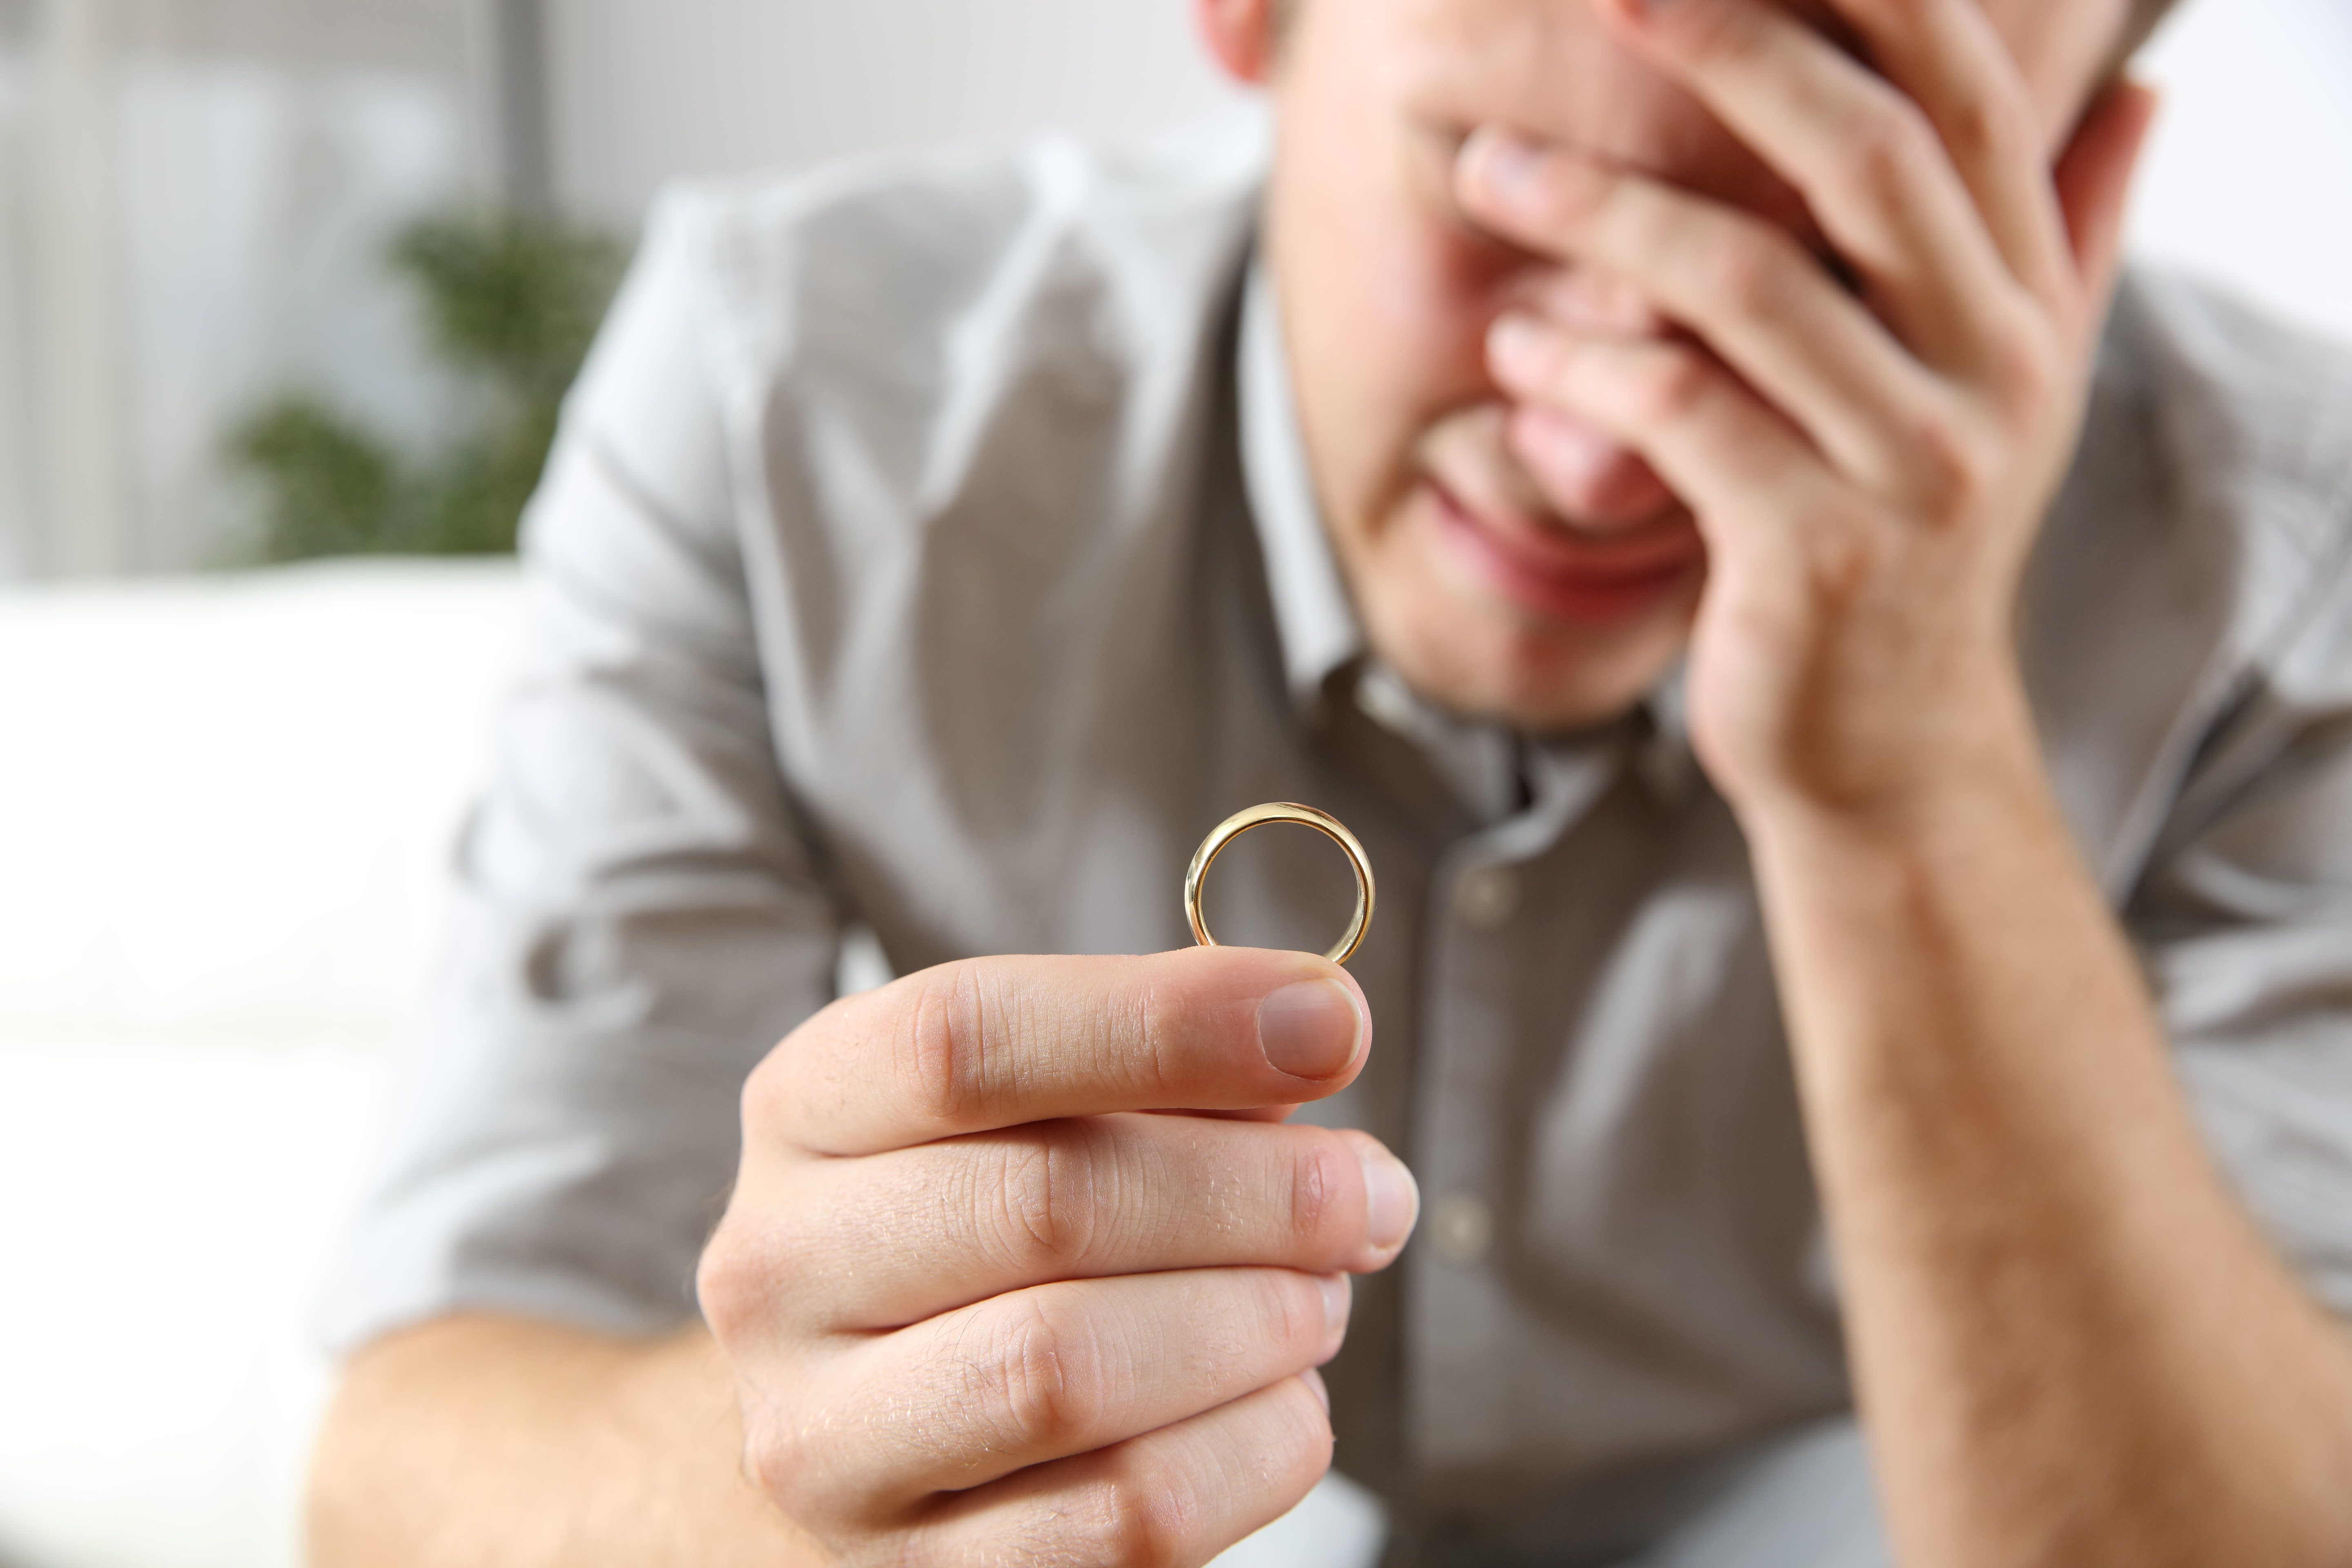 Man has no recollection of proposing after taking sleeping pills